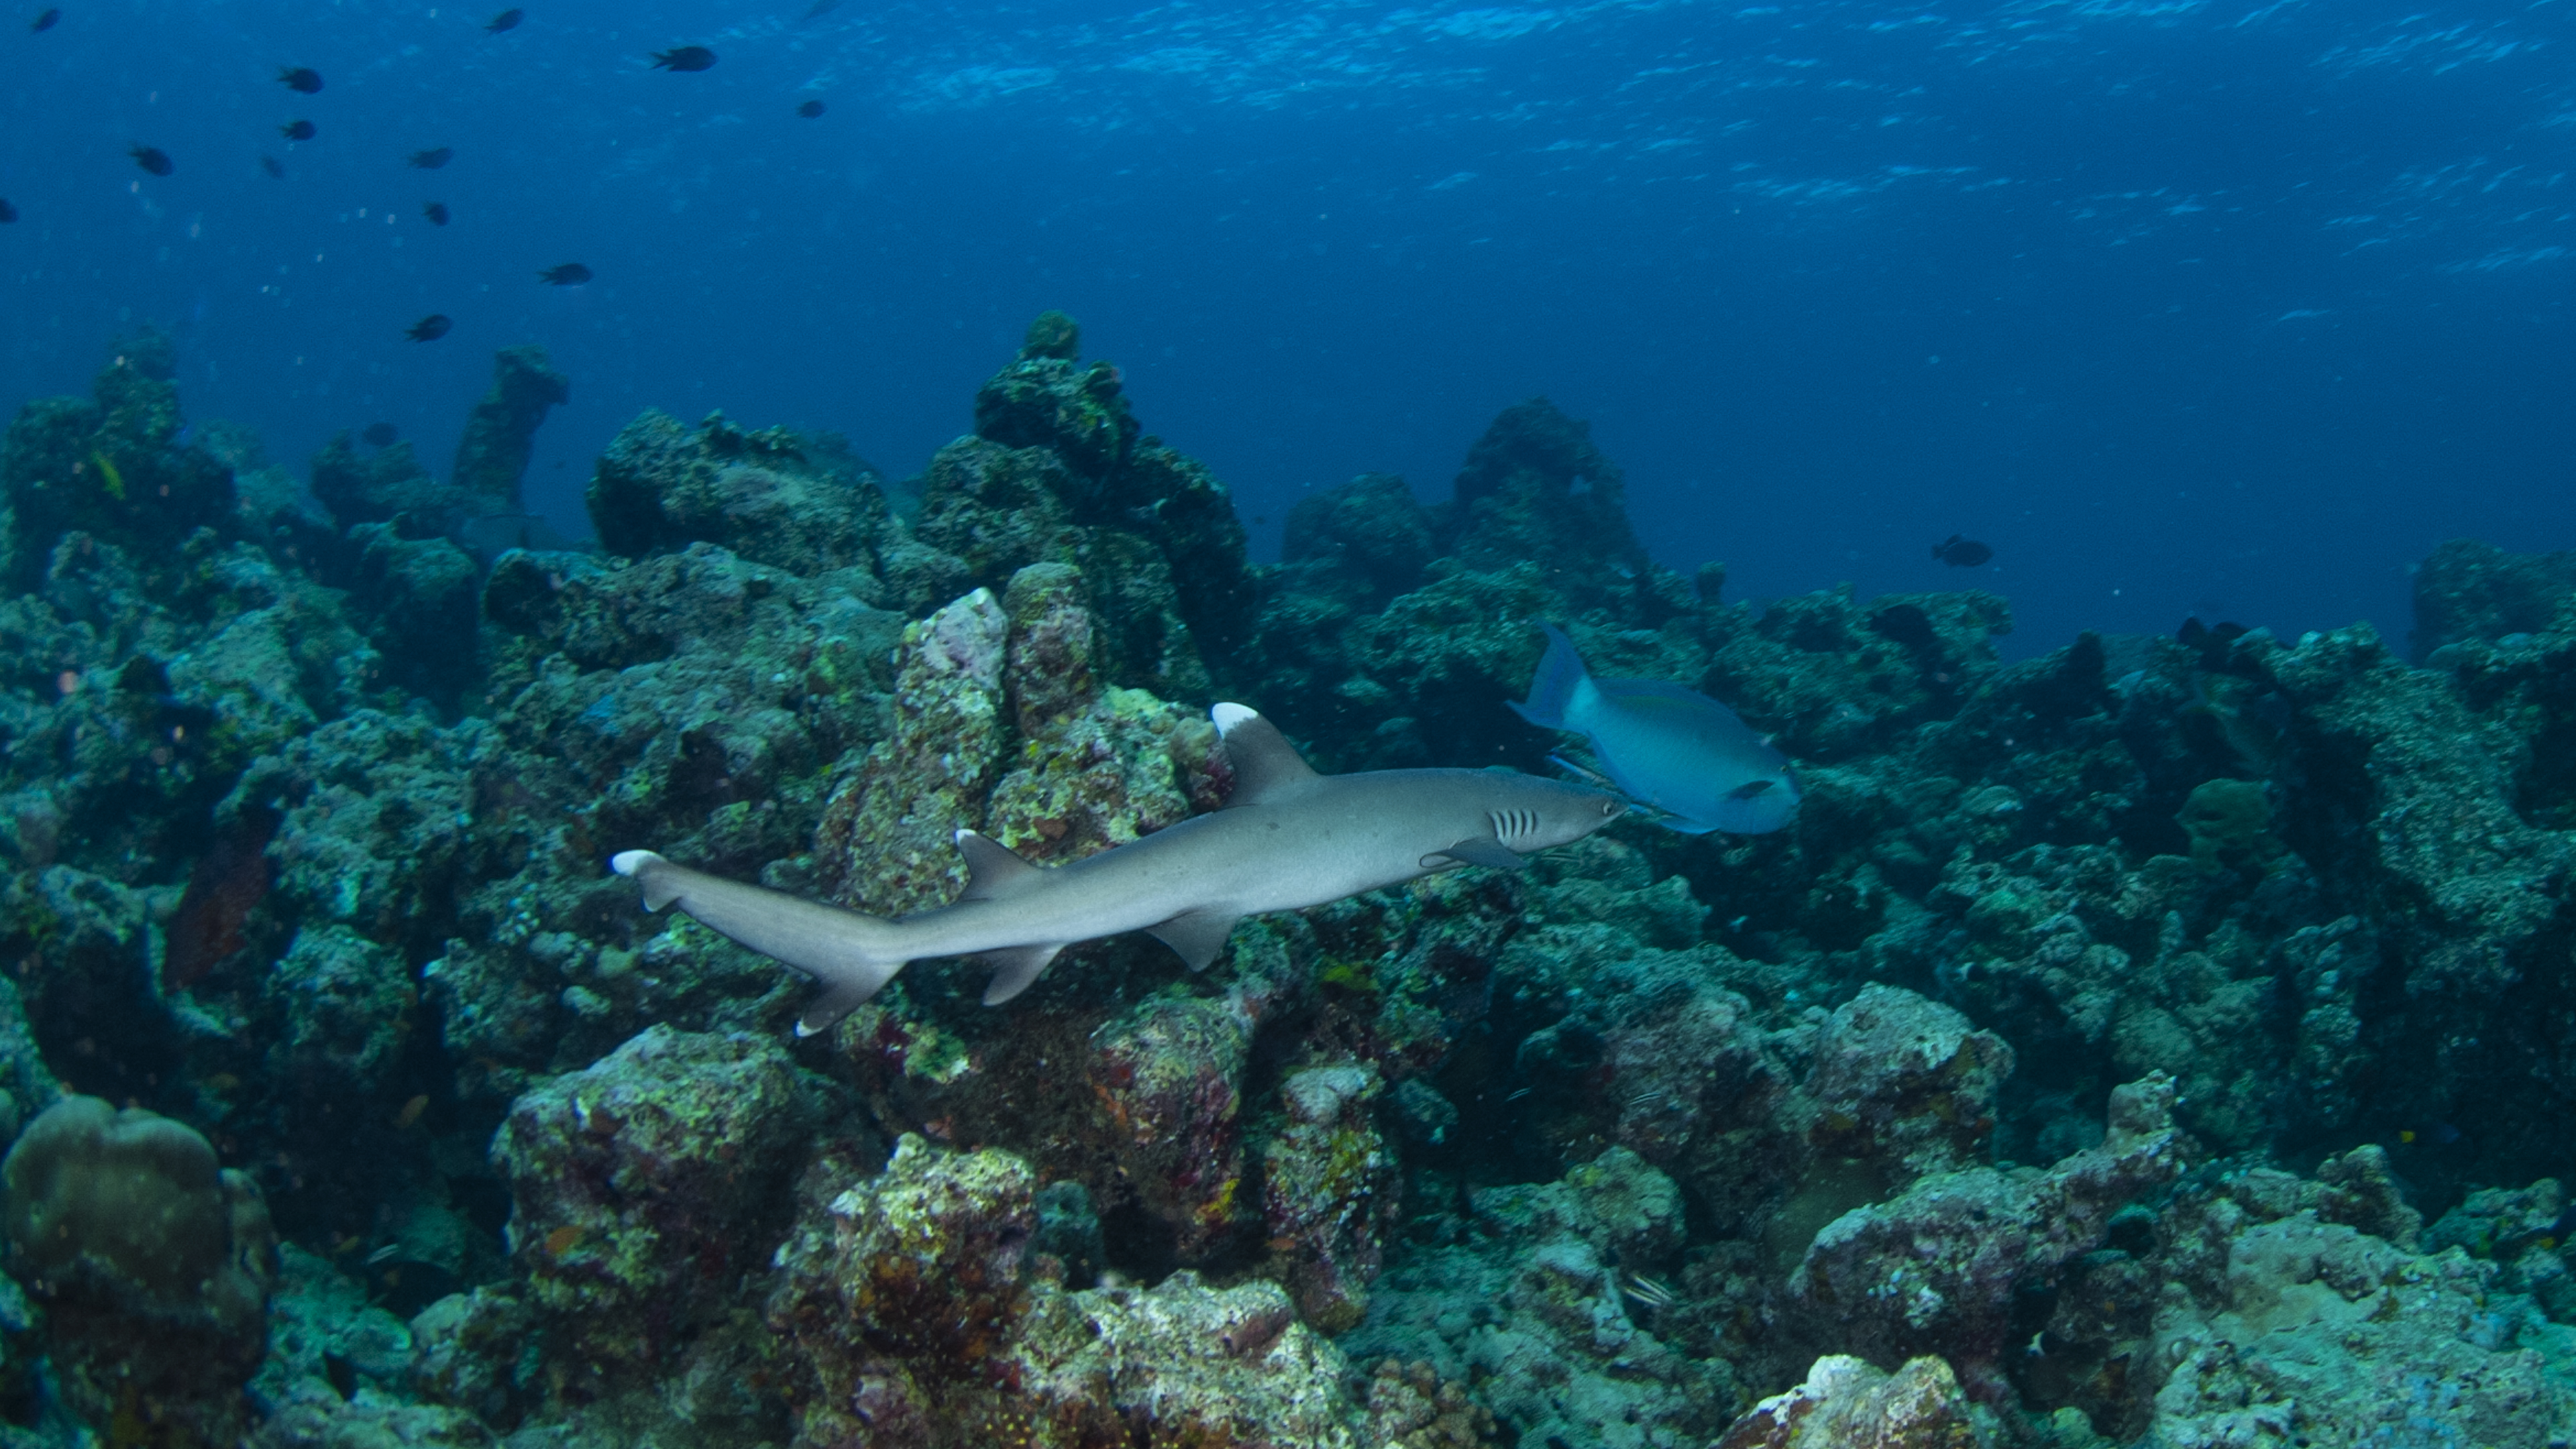 White Tip Reef Shark and Parrot Fish